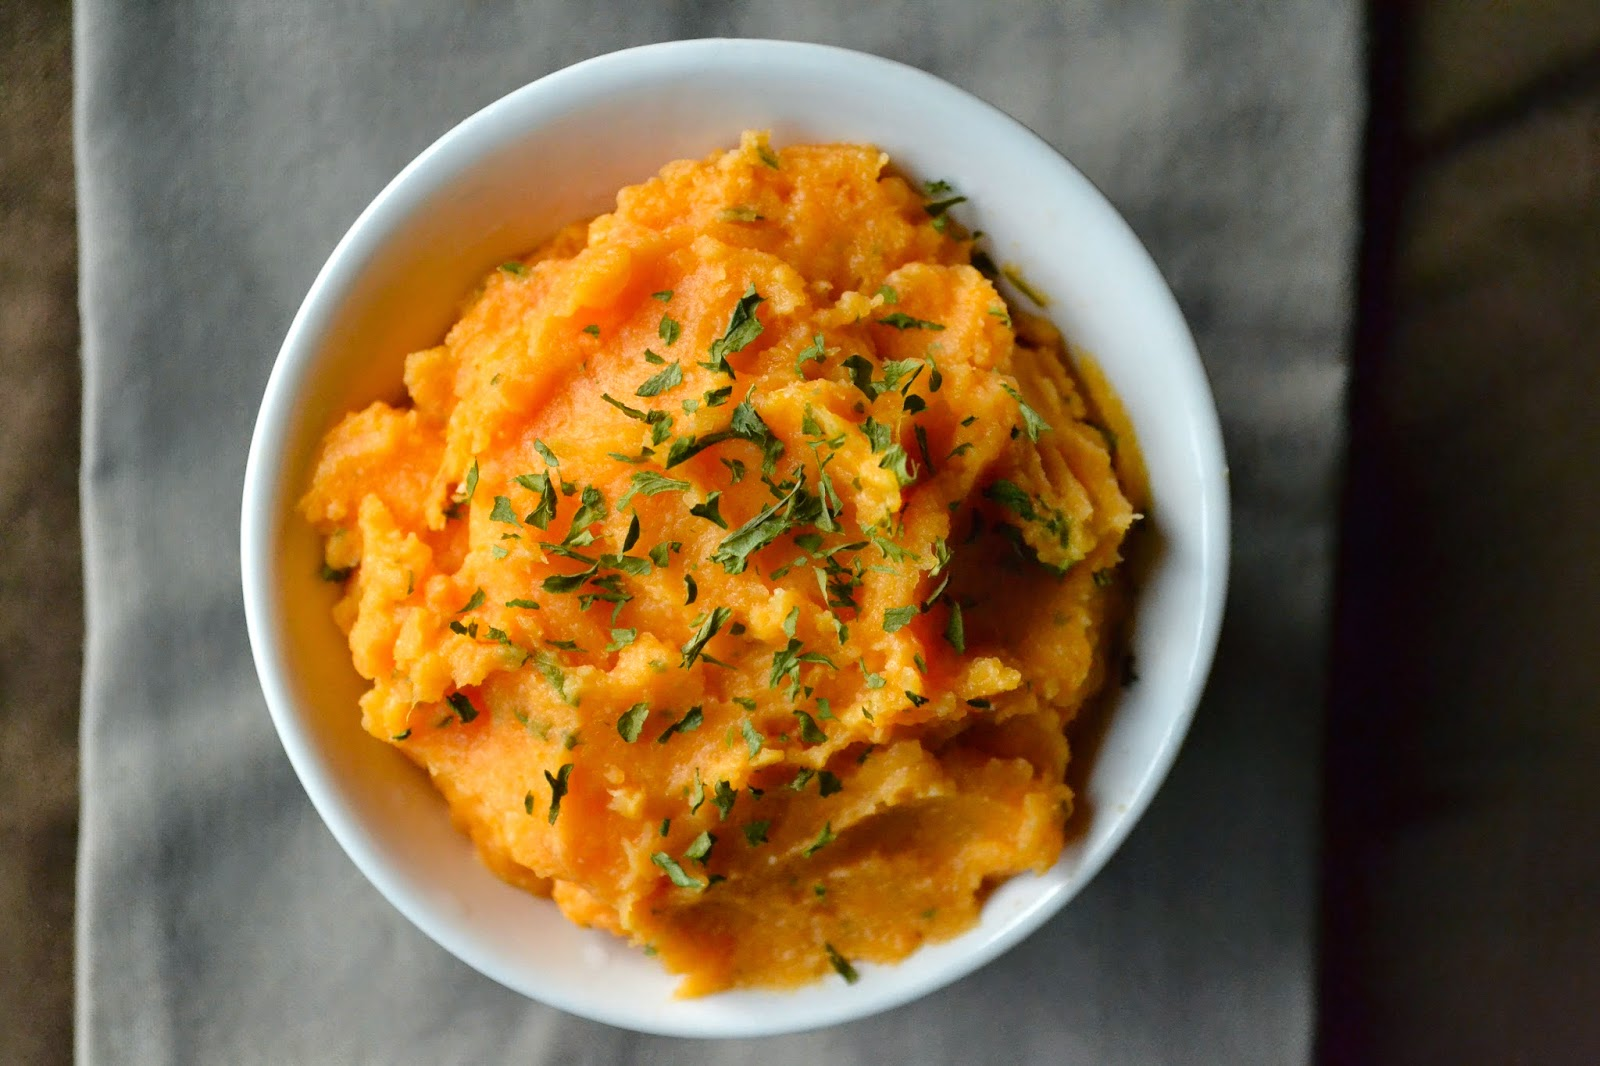 Mashed Sweet Potatoes with Garlic and Parsley